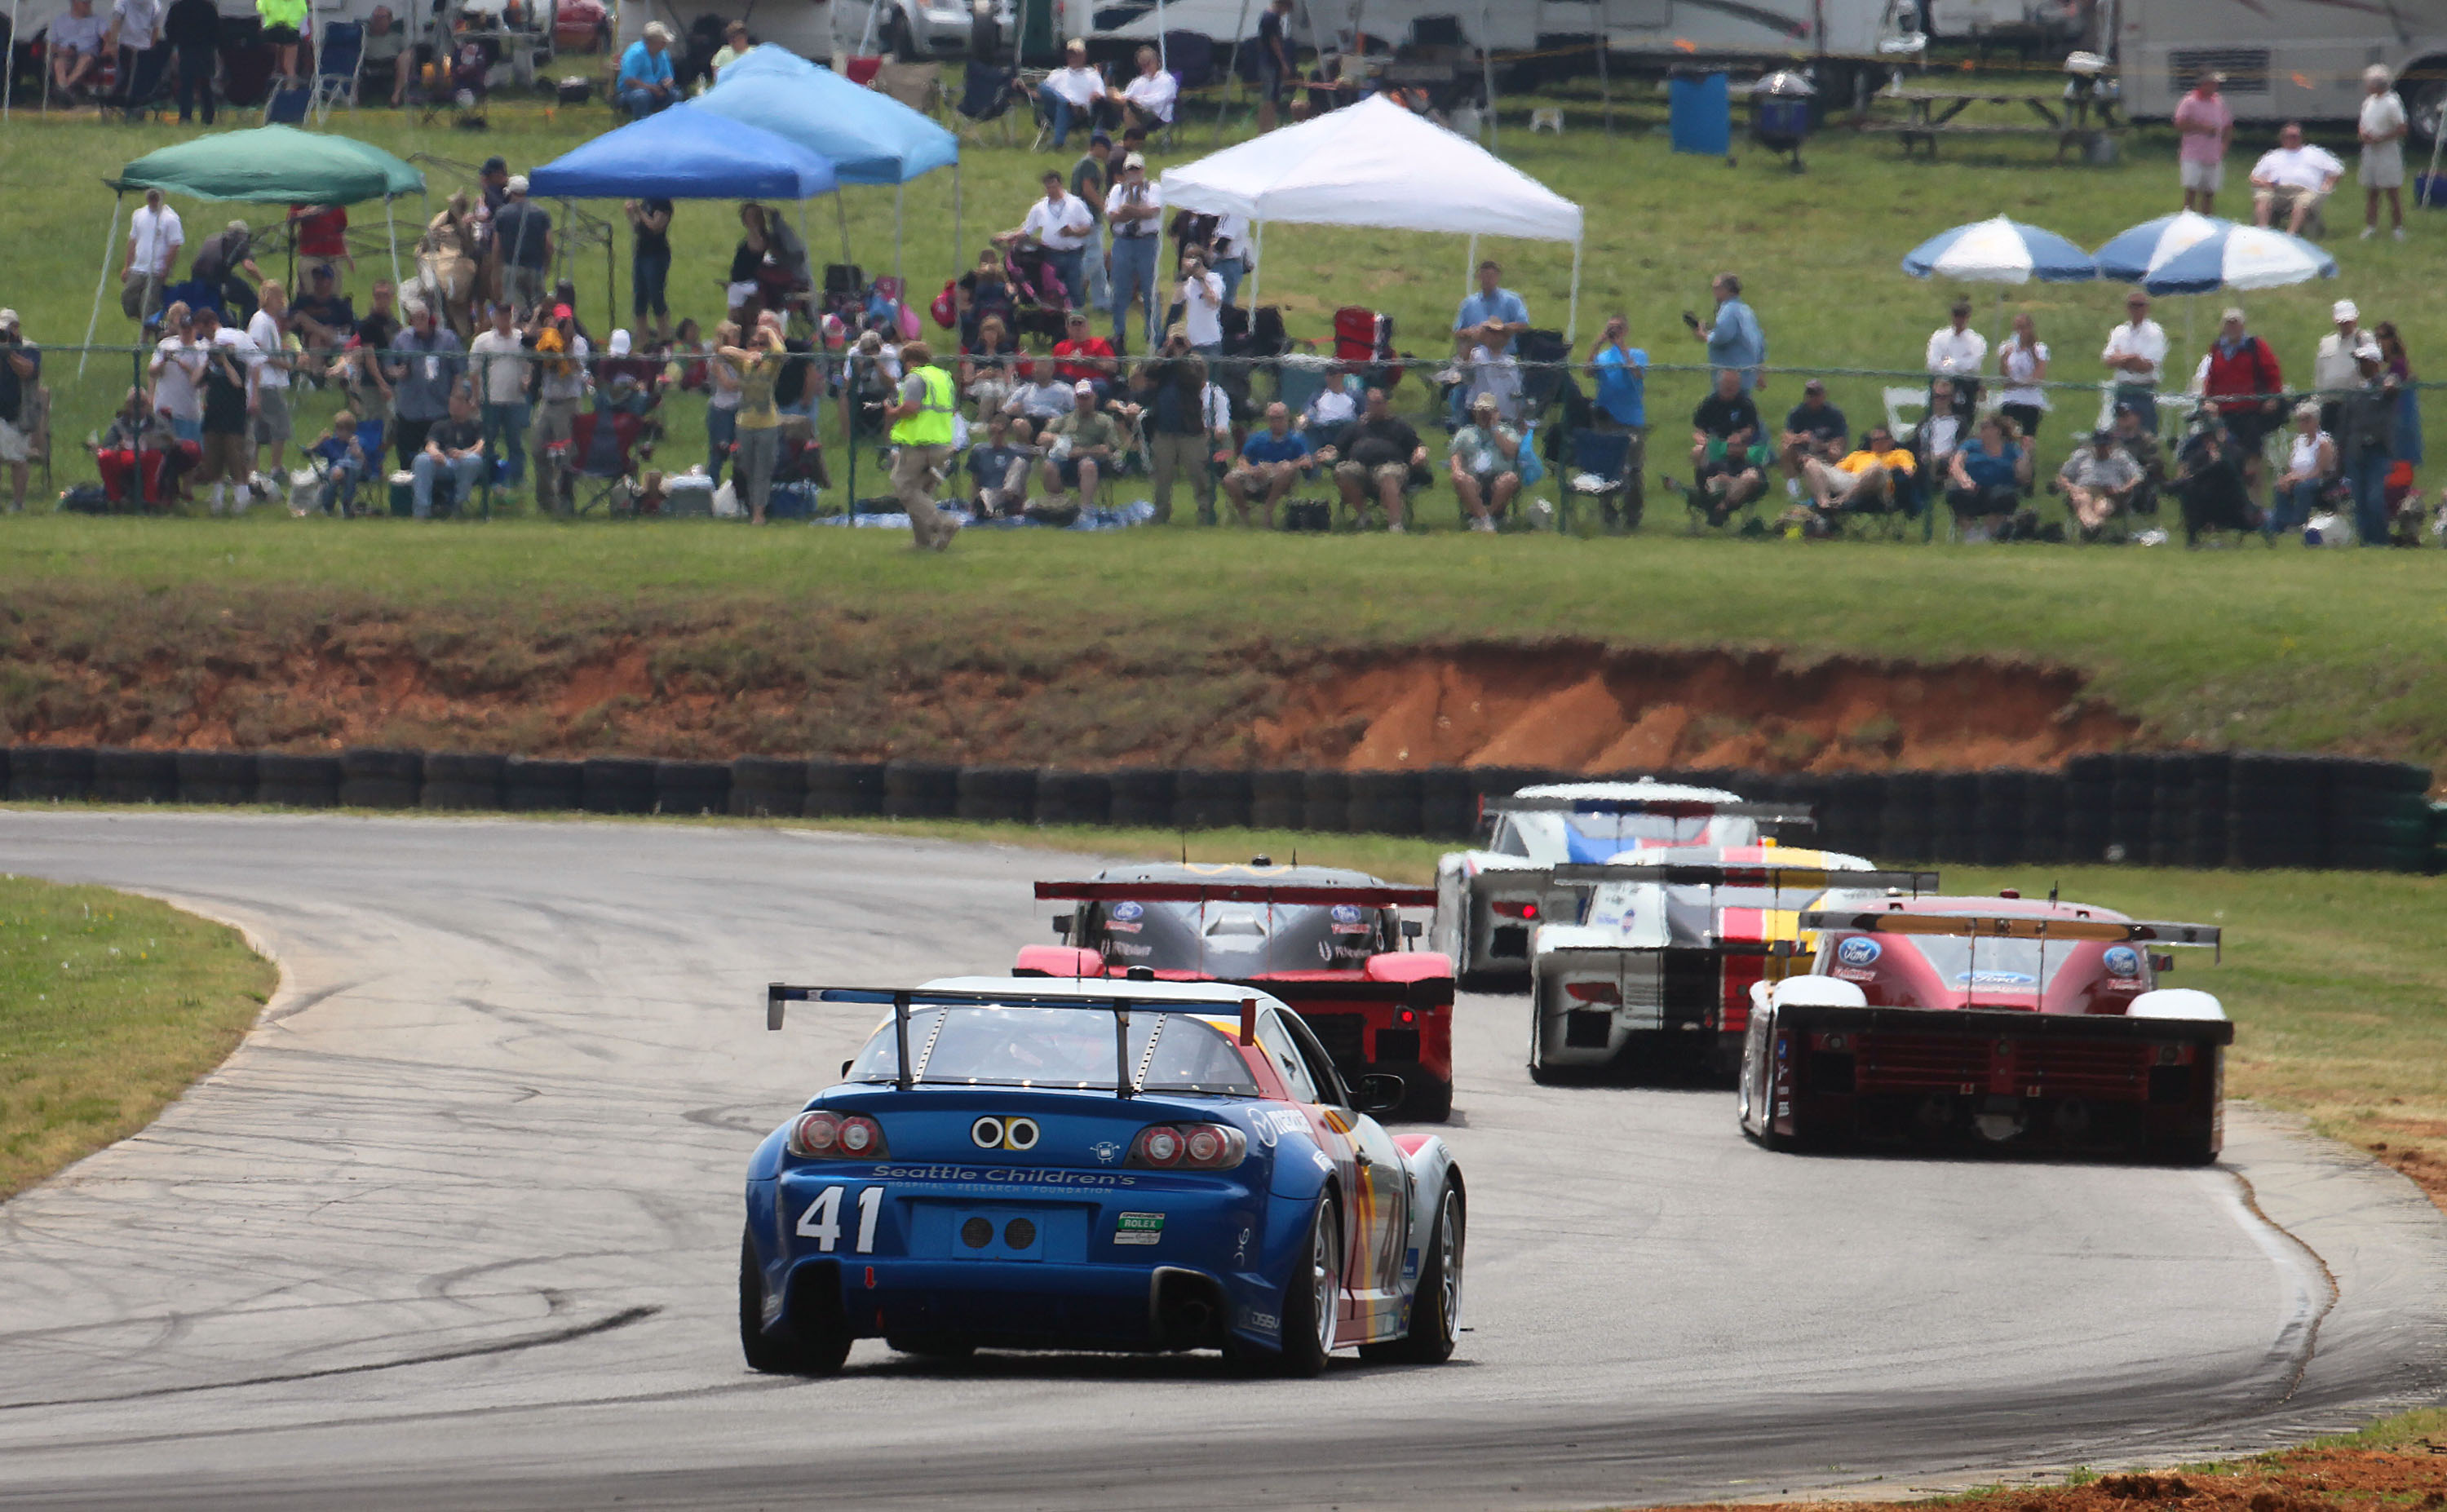 Rolex Series Sets Two Post-Season Tests at VIR, Miami